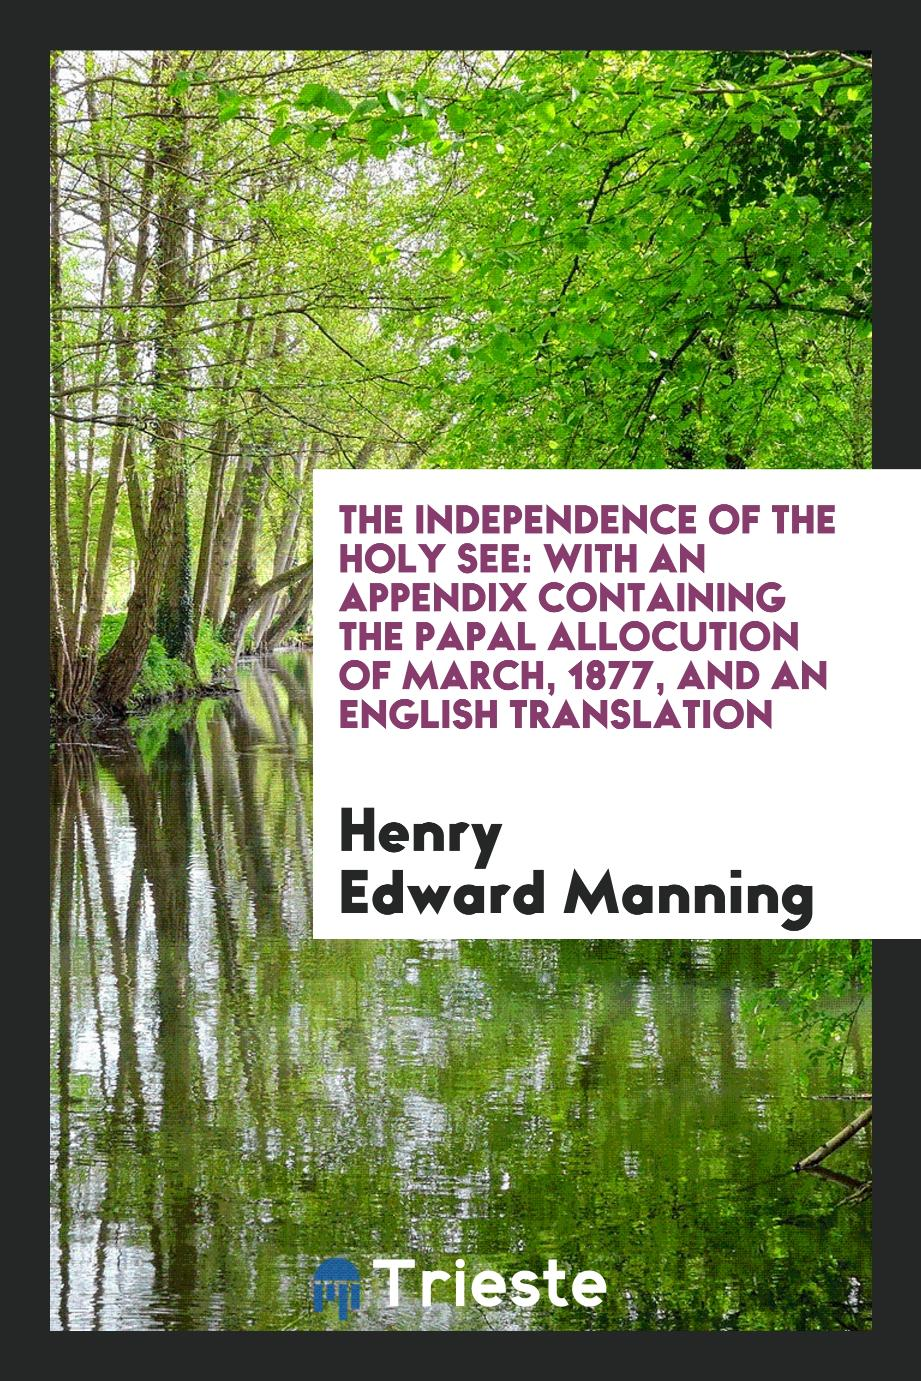 The independence of the holy see: with an appendix containing the papal allocution of March, 1877, and an English translation